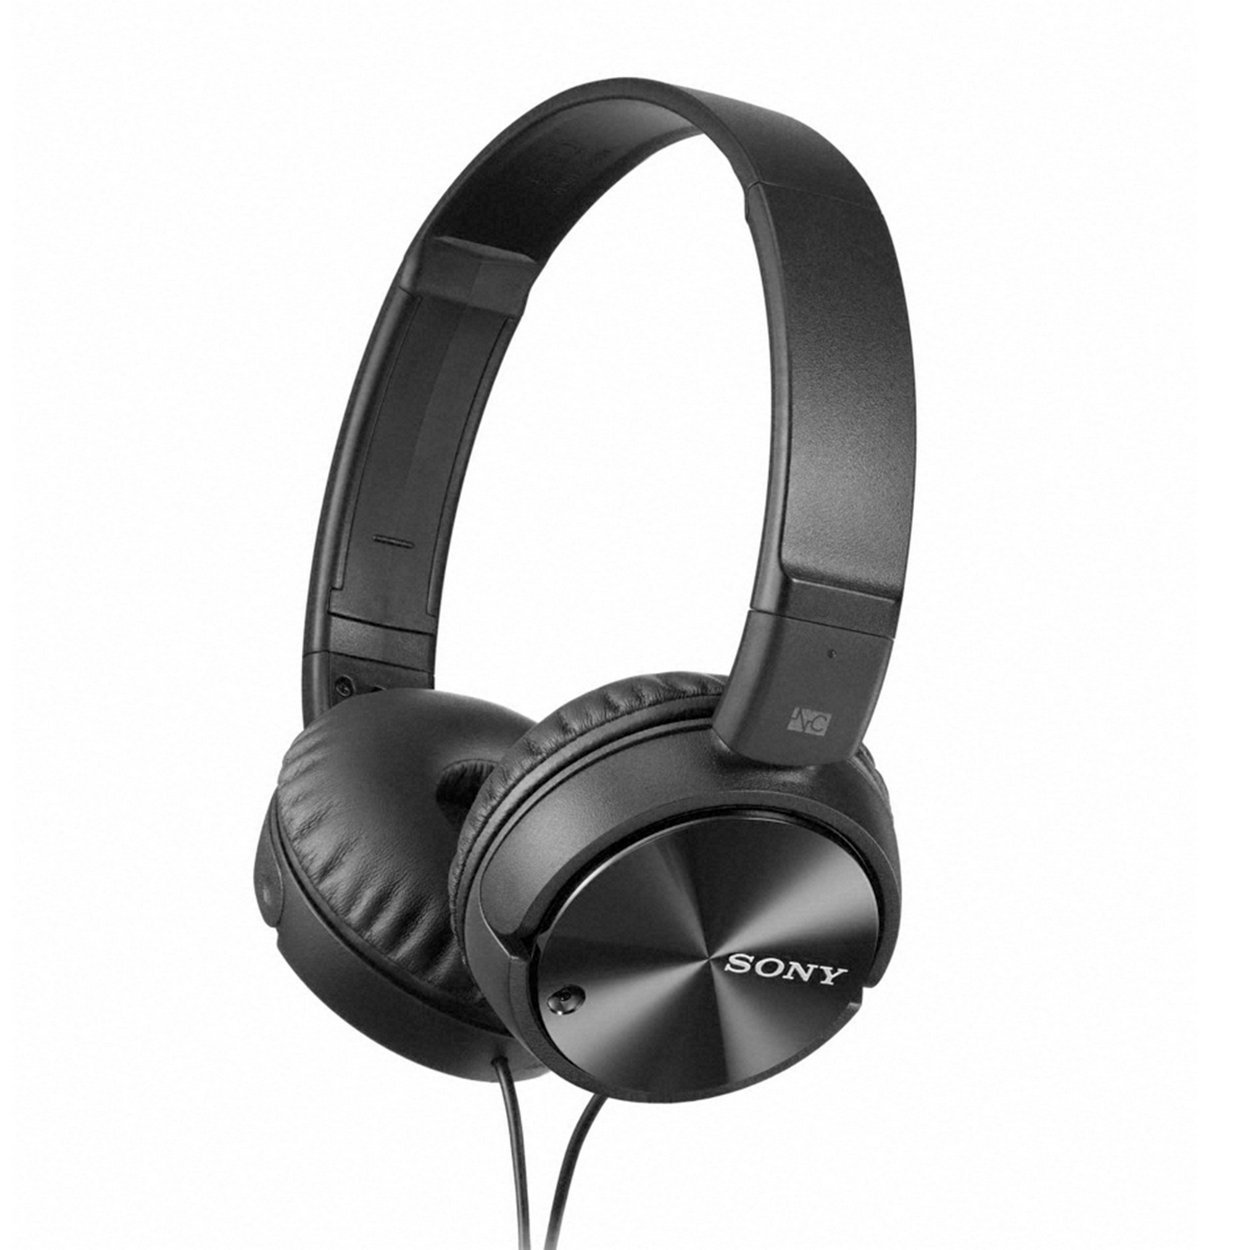 Sony MDR-ZX110NC On-Ear Noise Cancellation Headphones Image